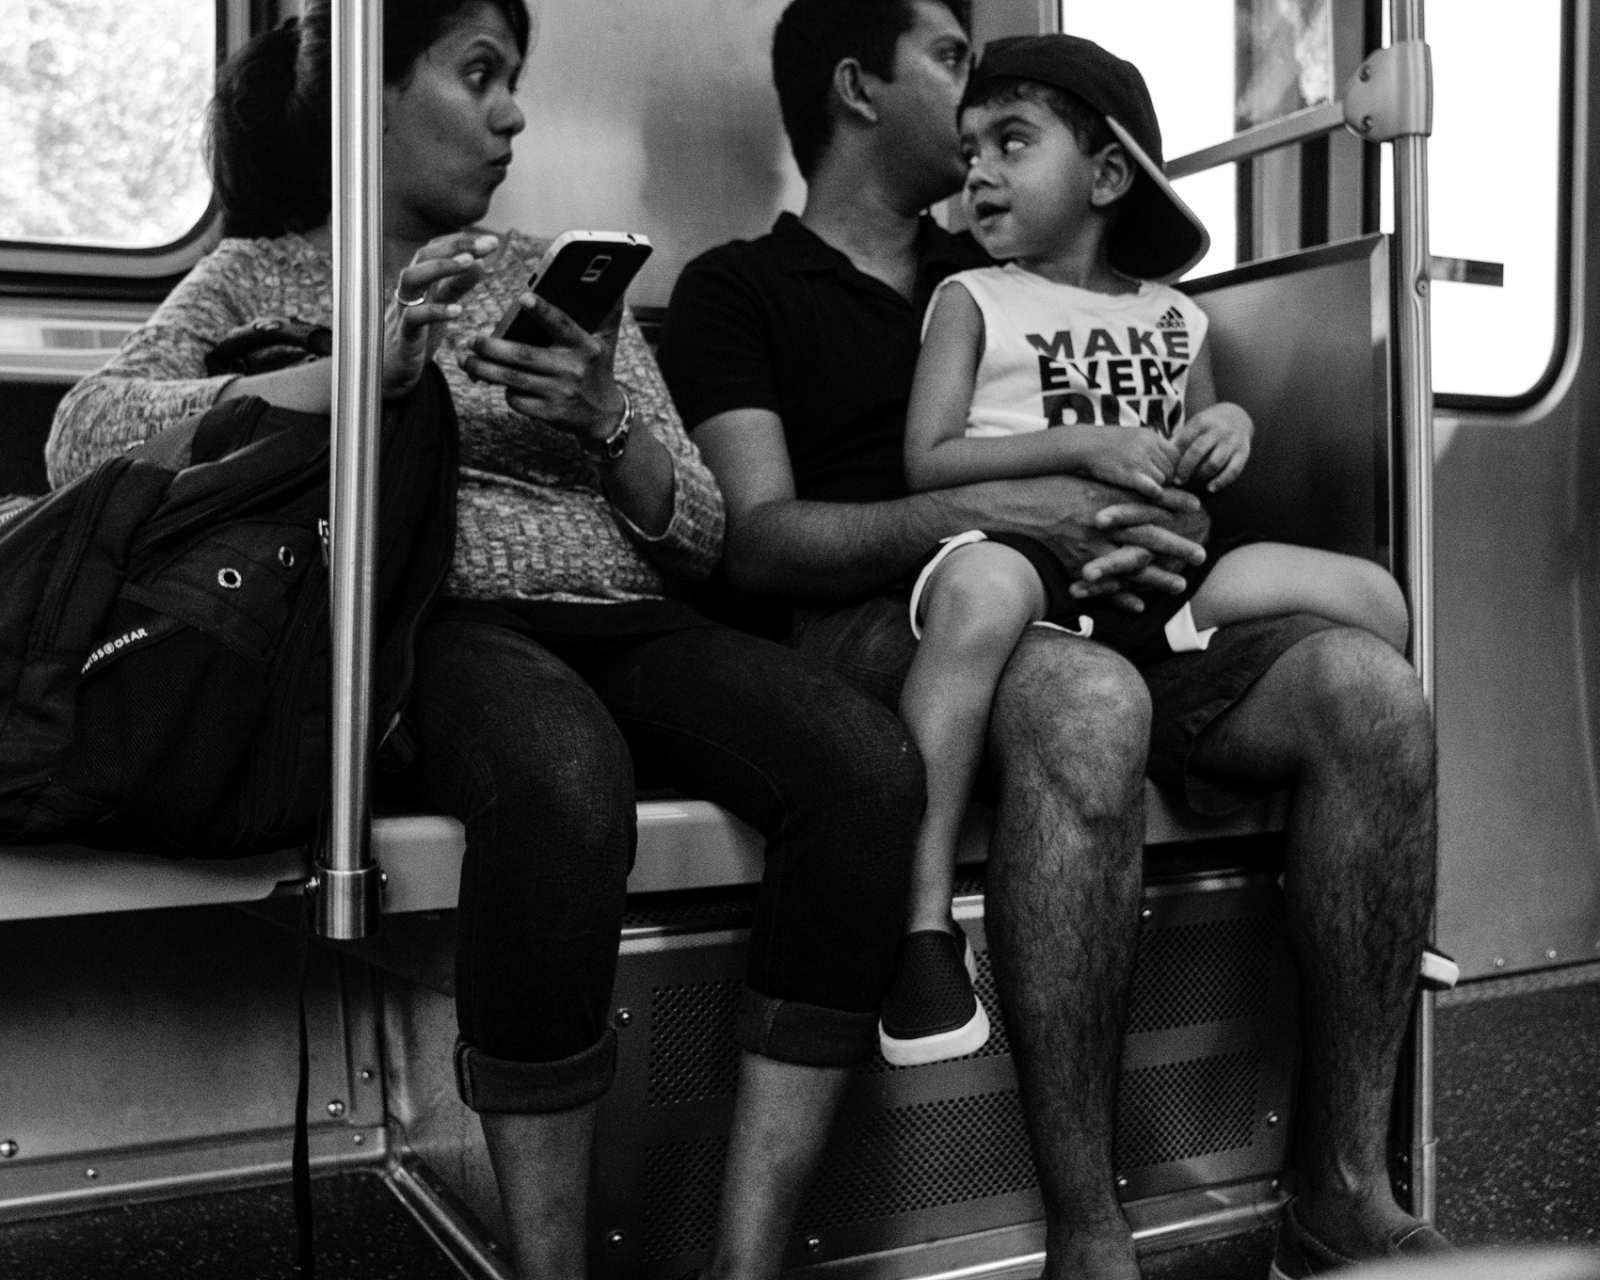 Family on the Red Line, Chicago 2017